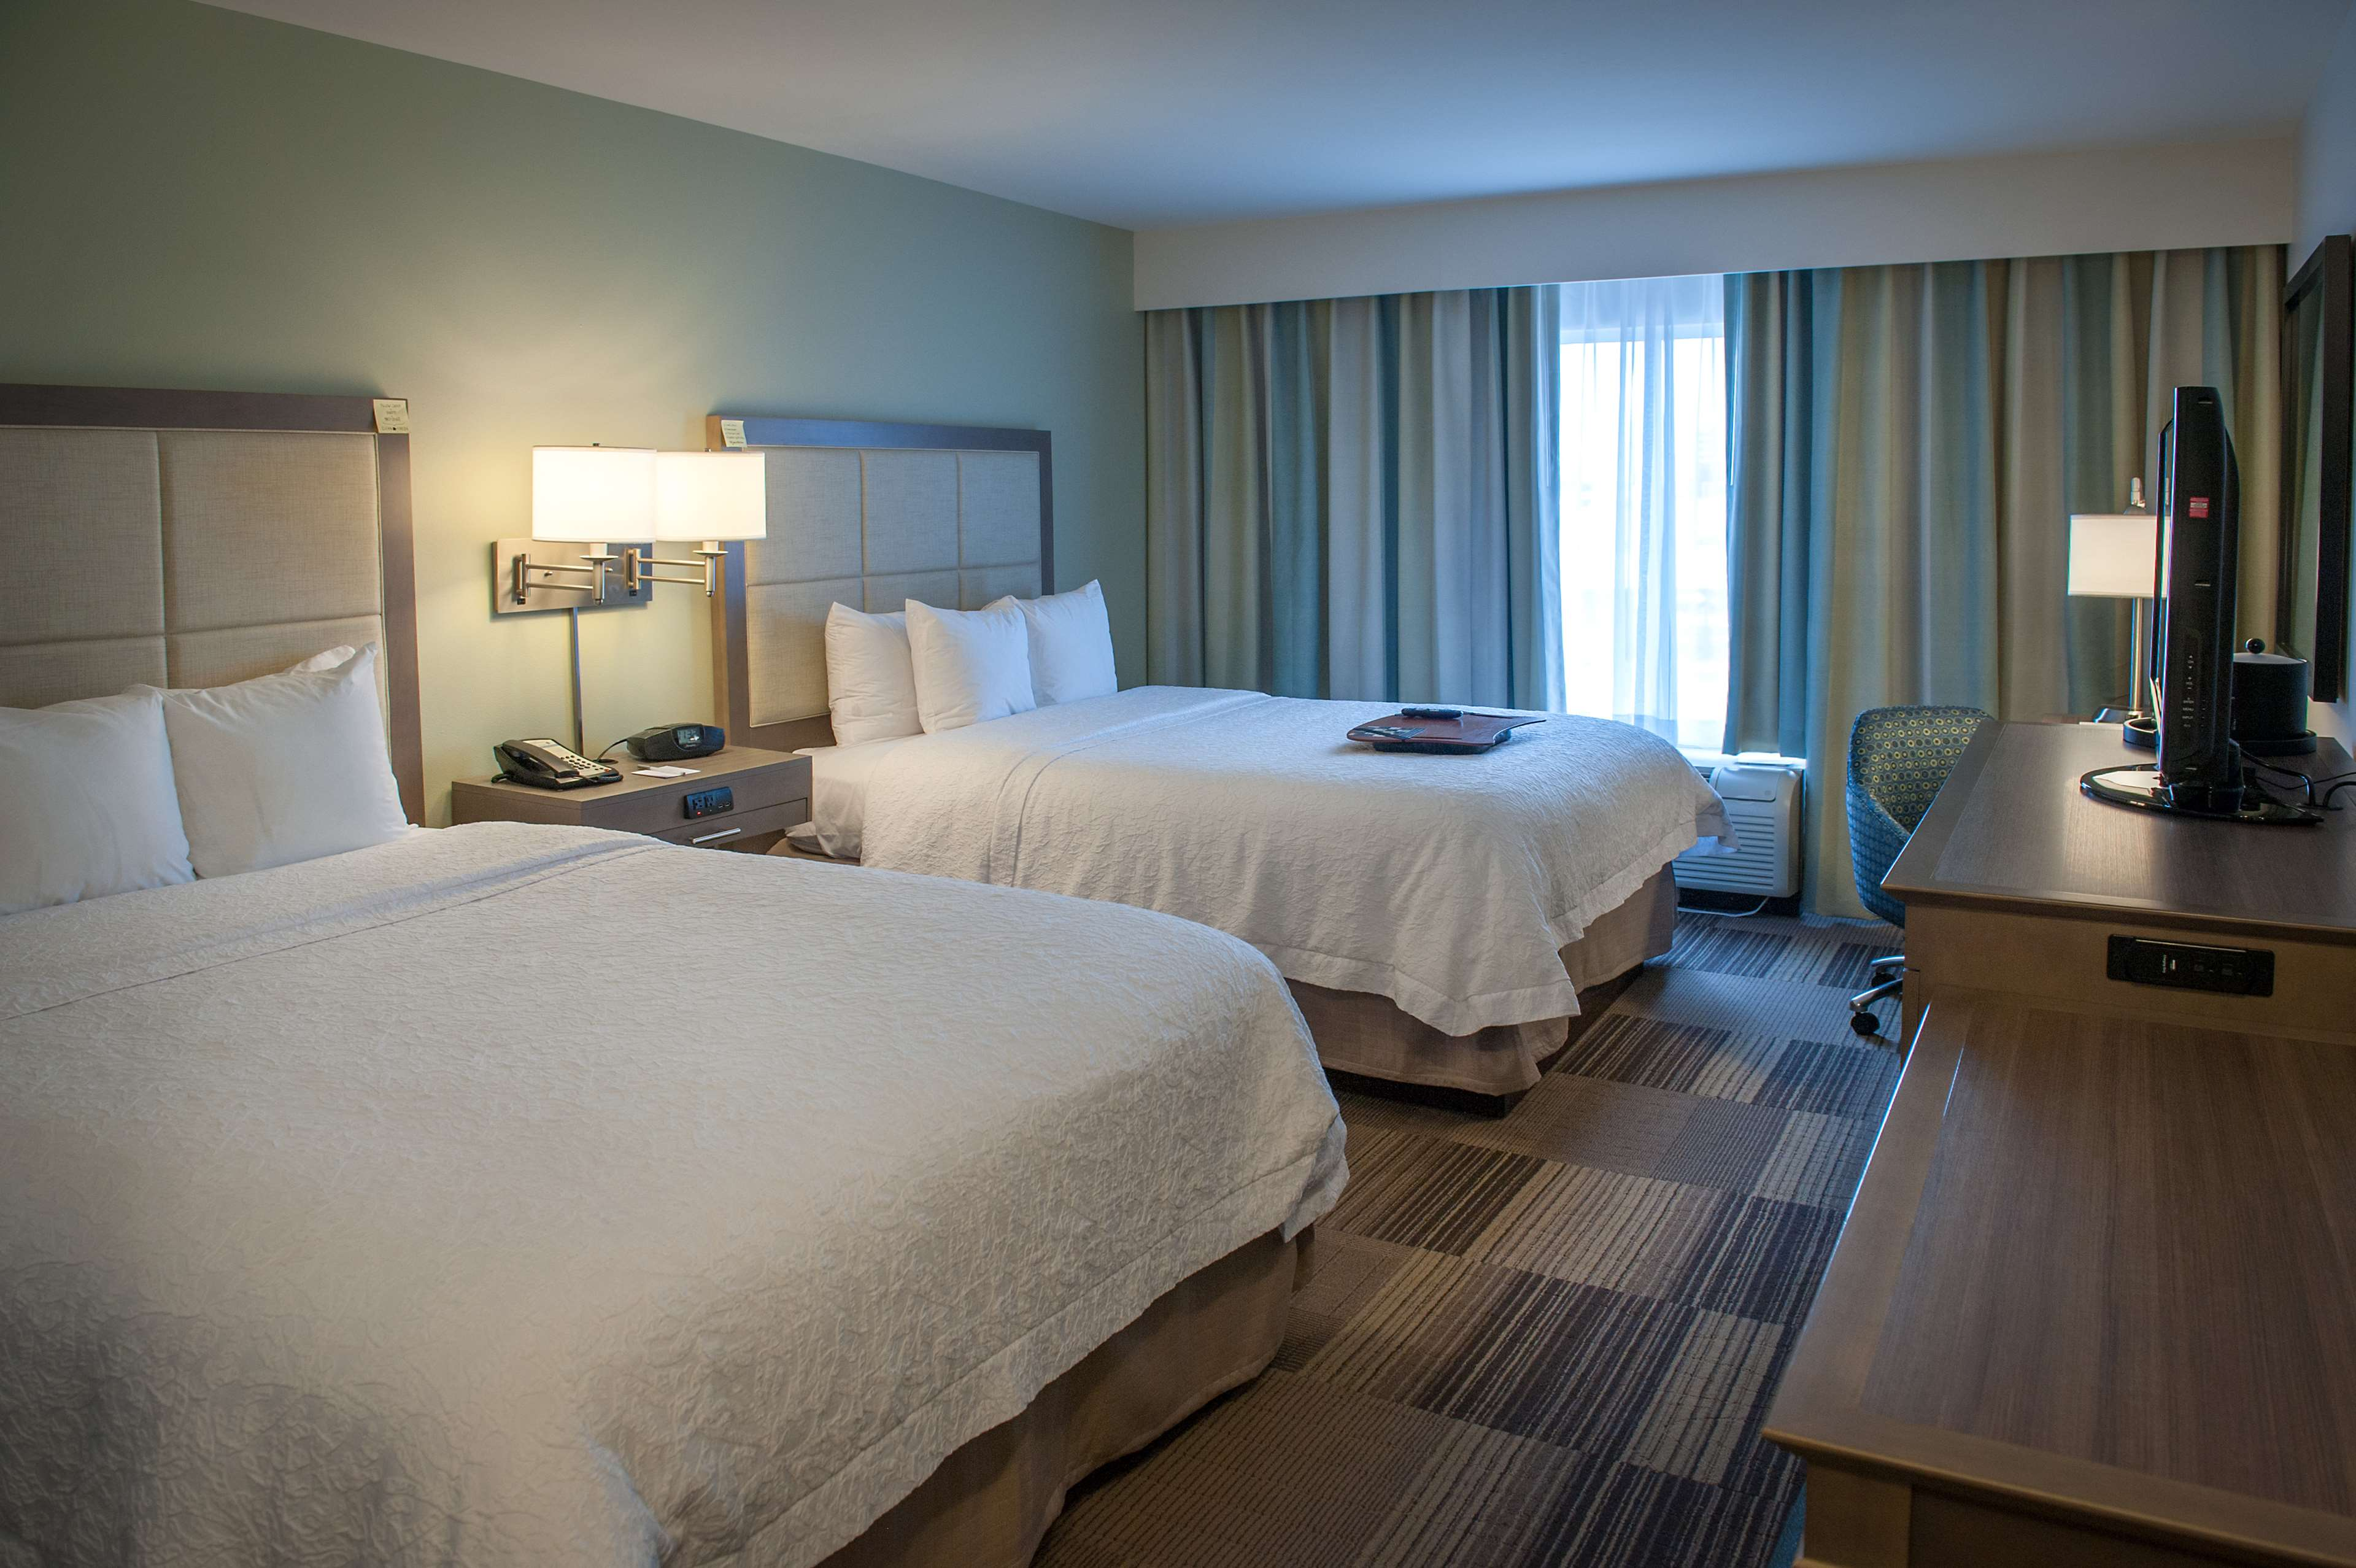 Hampton Inn & Suites New Orleans-Elmwood/Clearview Parkway Area image 16